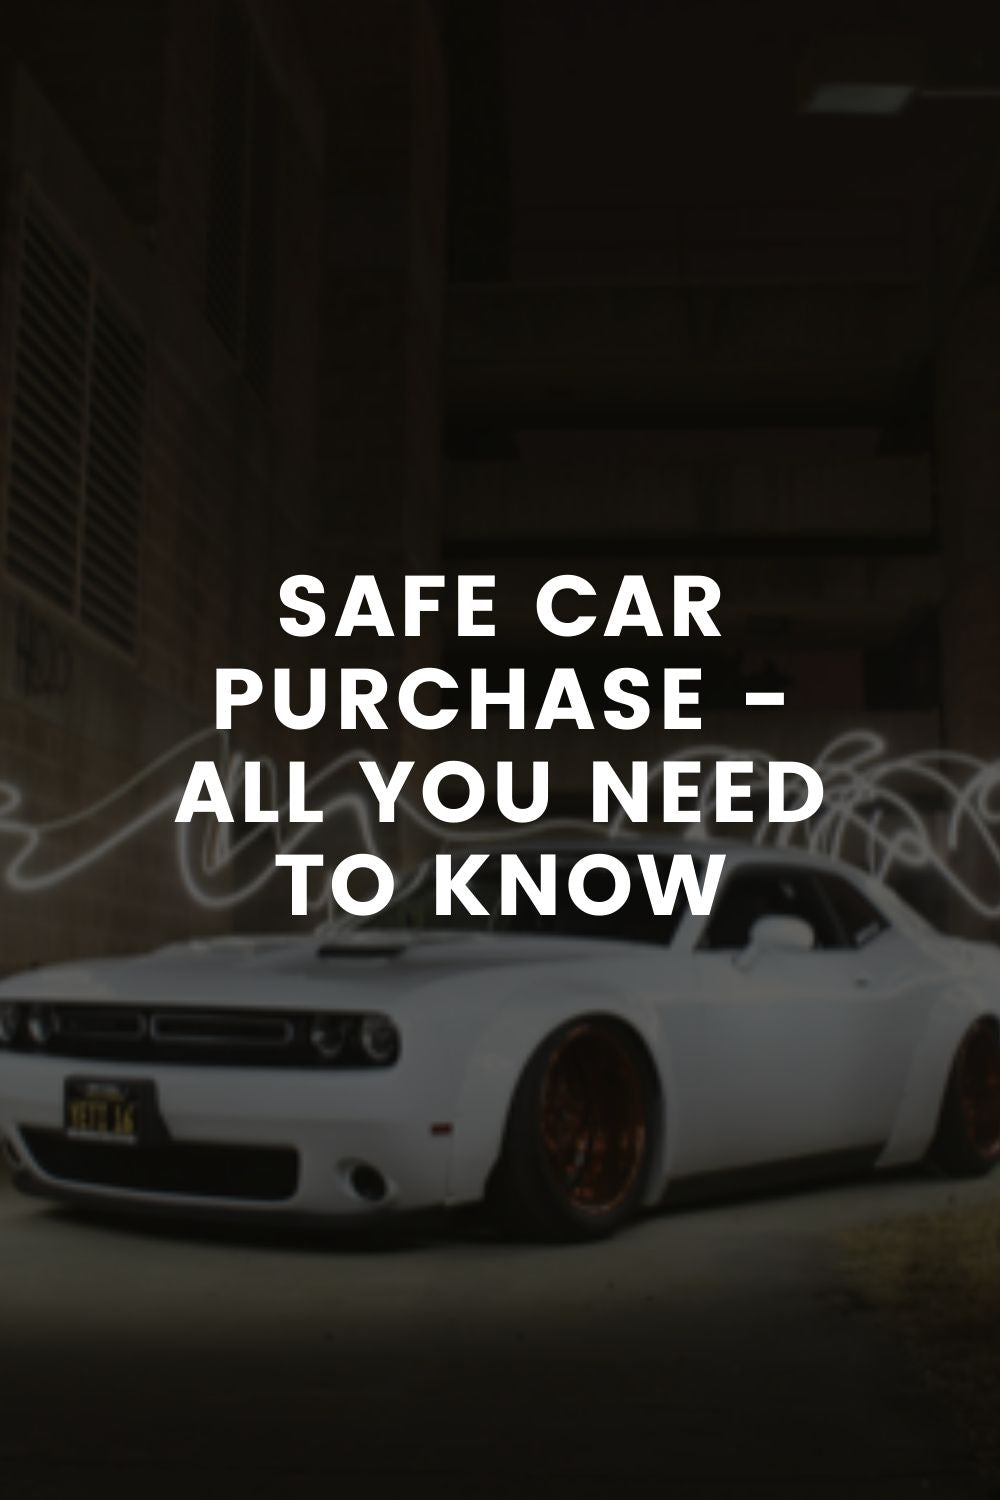 Safe Car Purchase - All You Need to Know